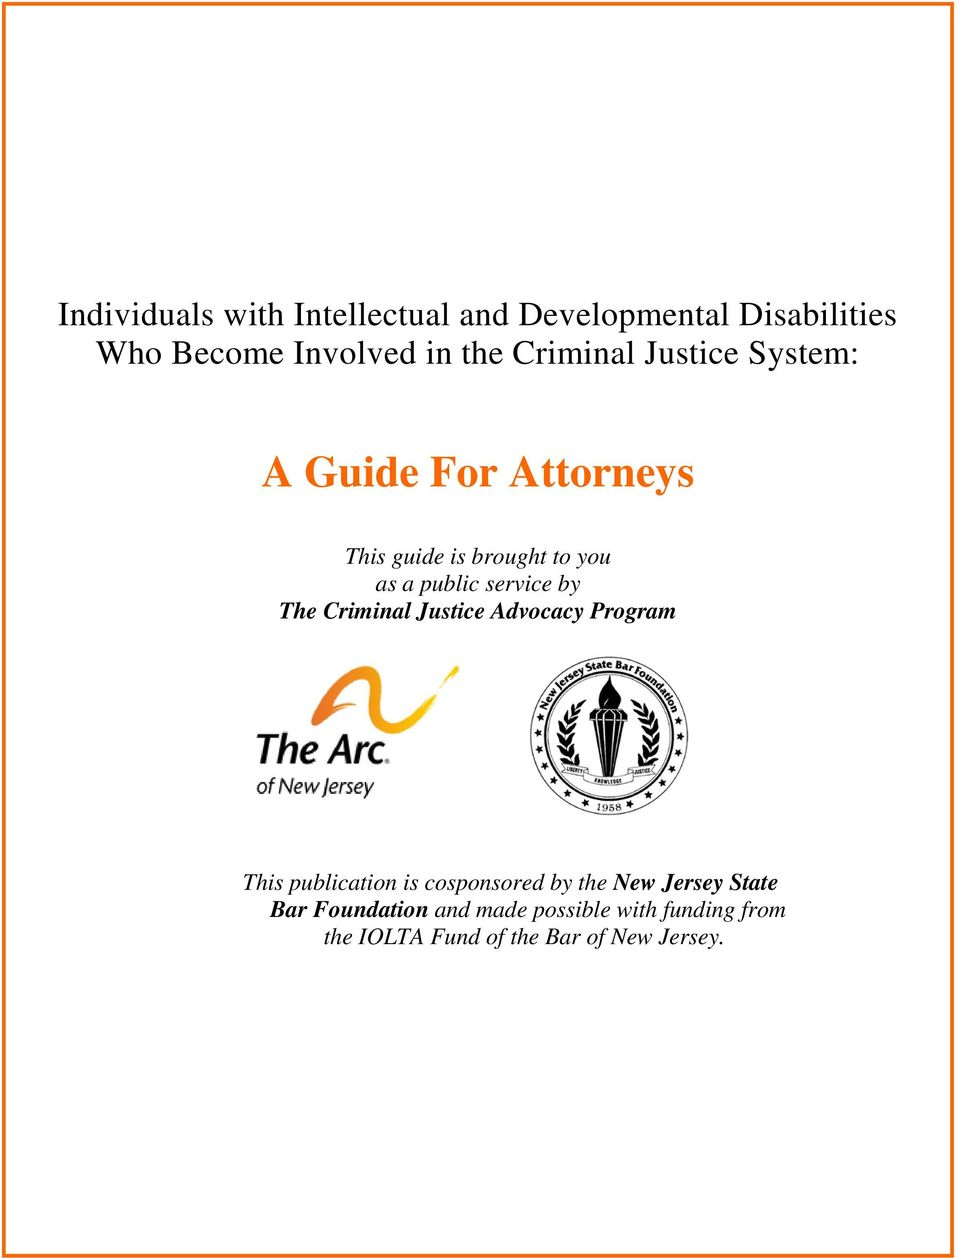 Criminal Justice Advocacy Program This publication is cosponsored by the New Jersey